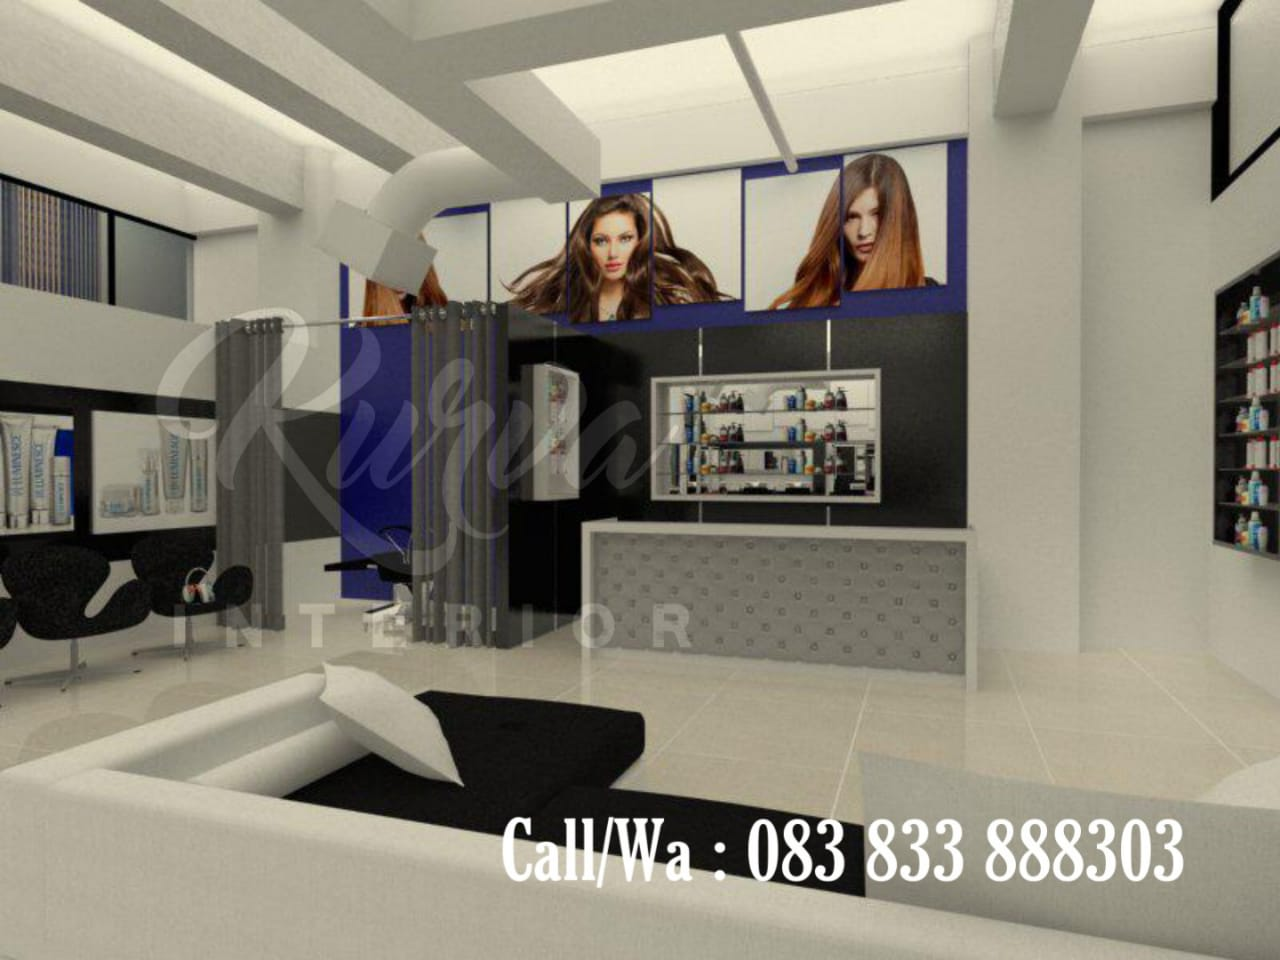 Exclusive Salon and Spa, Surabaya